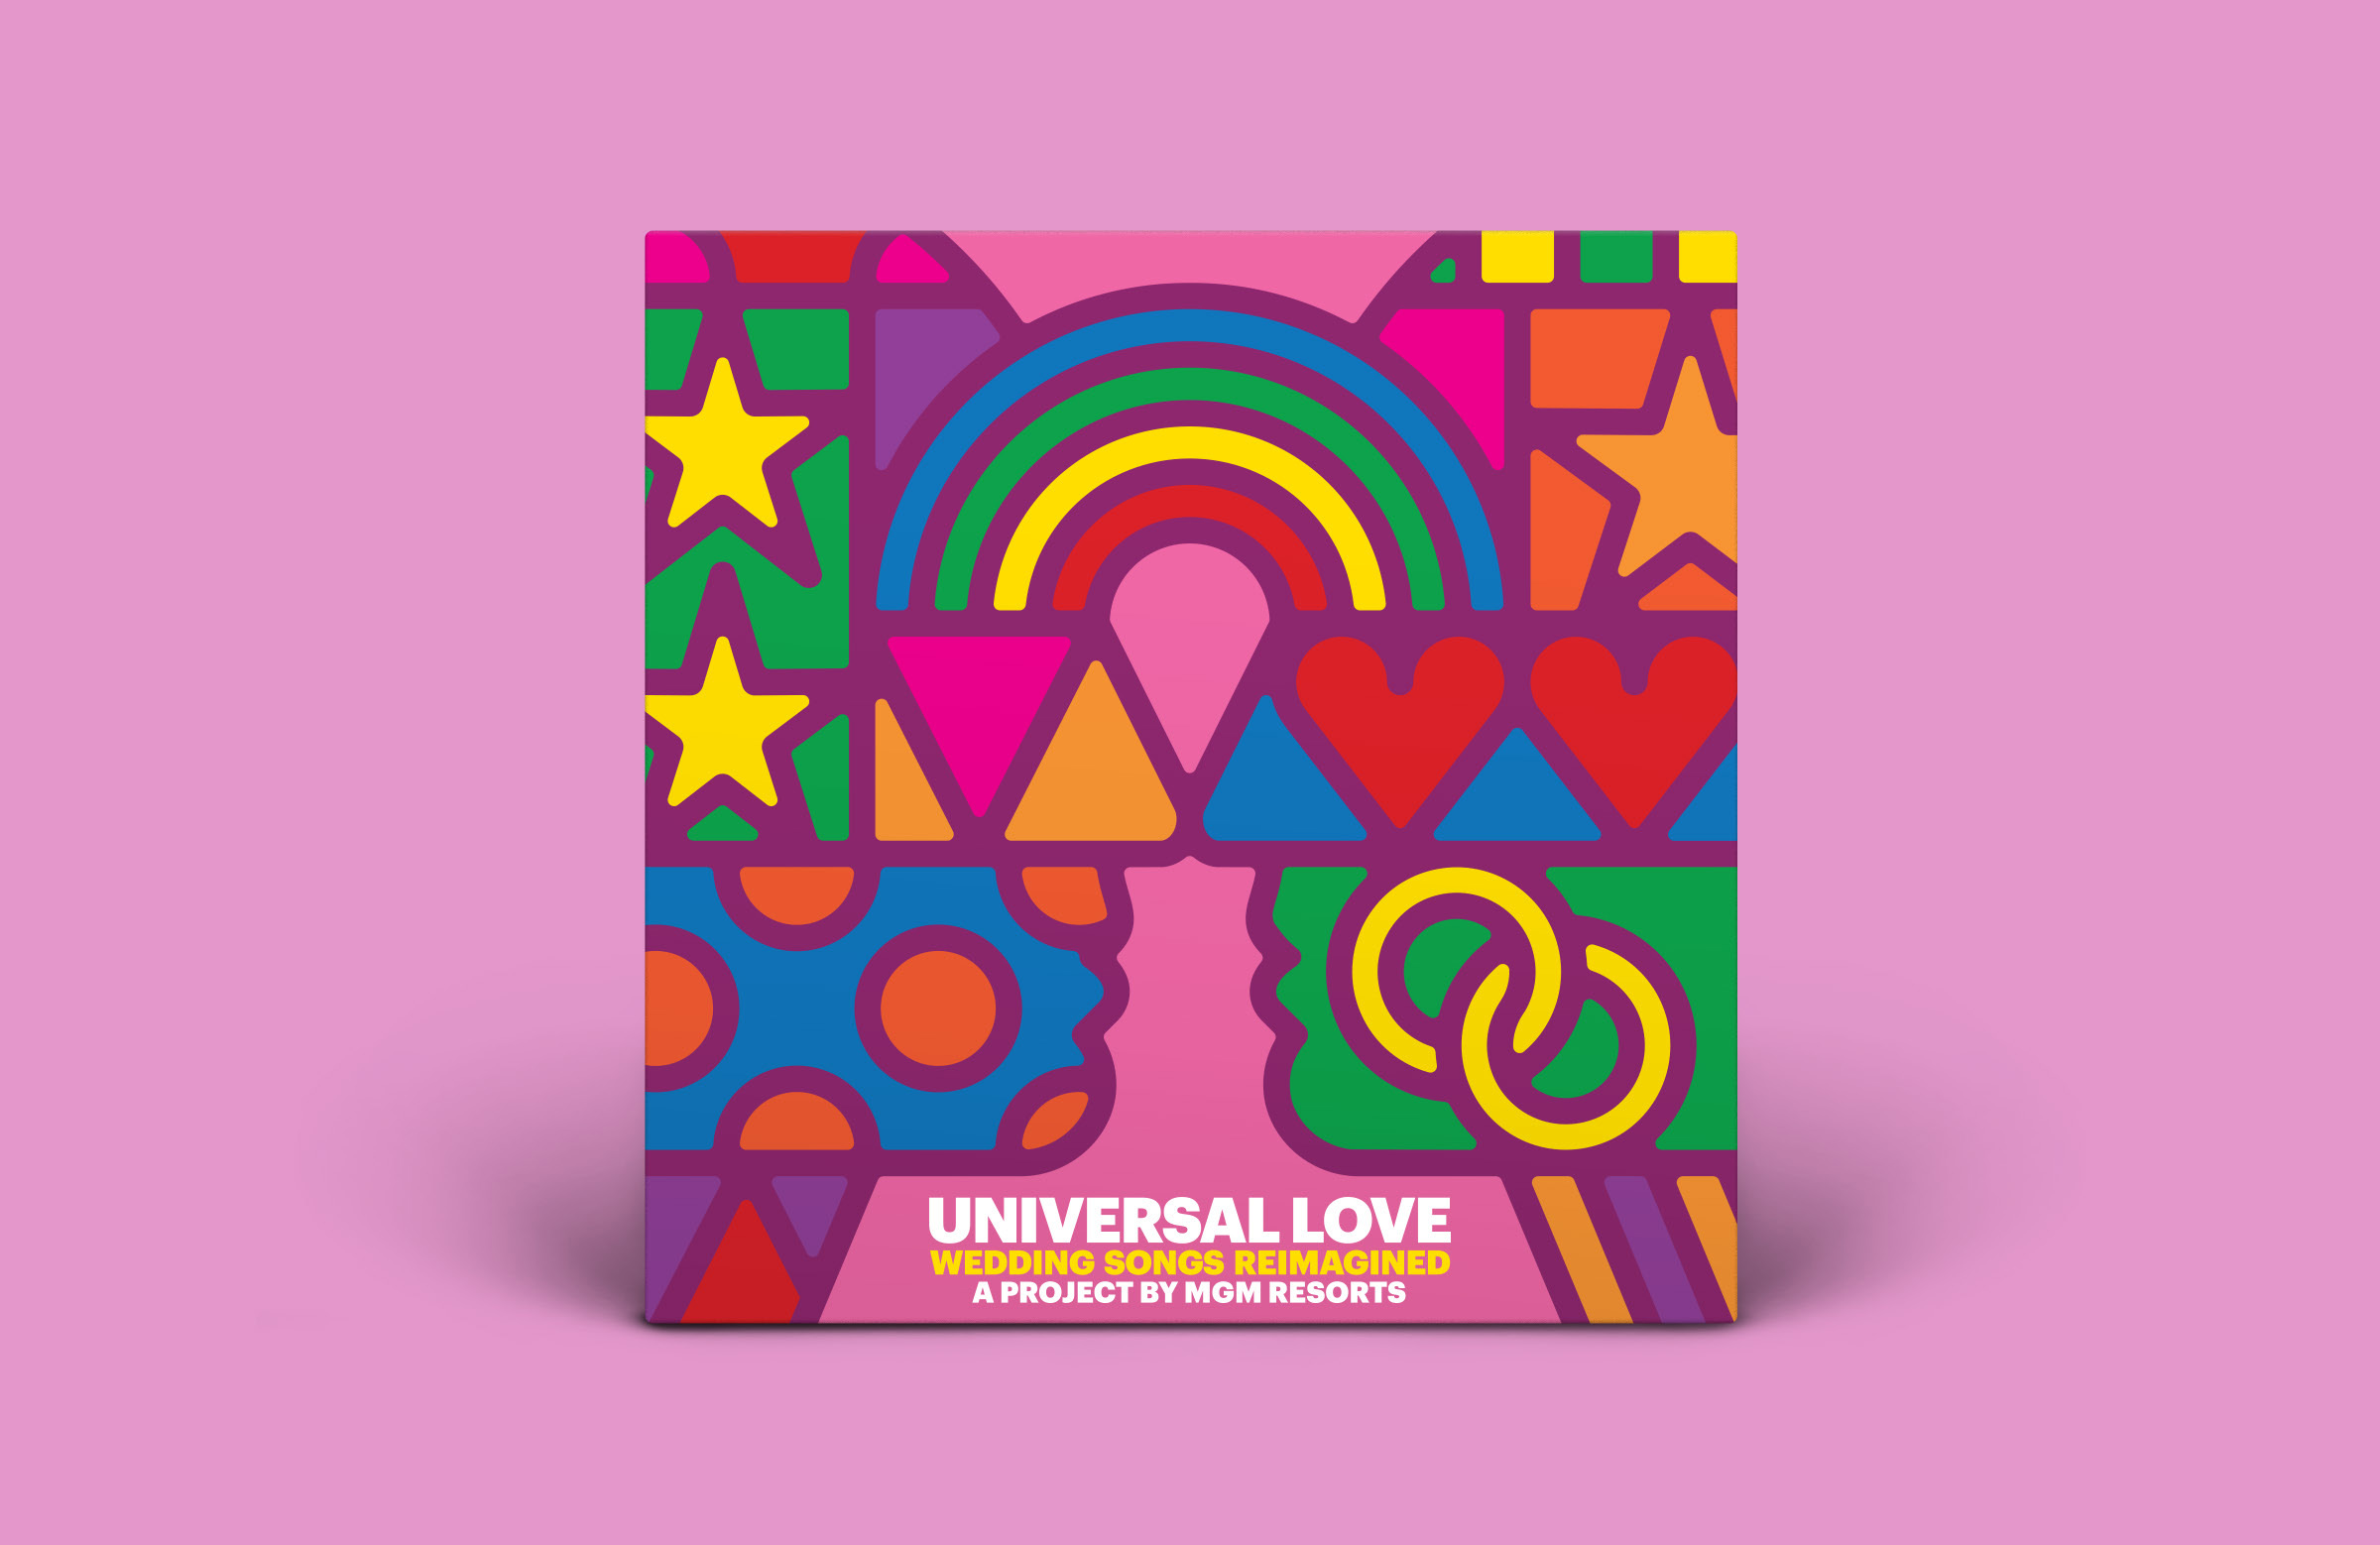 MGM Resorts releases UNIVERSAL LOVE, a collection of reimagined love songs for the LGBTQ community. Now streaming on Spotify, Pandora, iTunes and Apple Music.